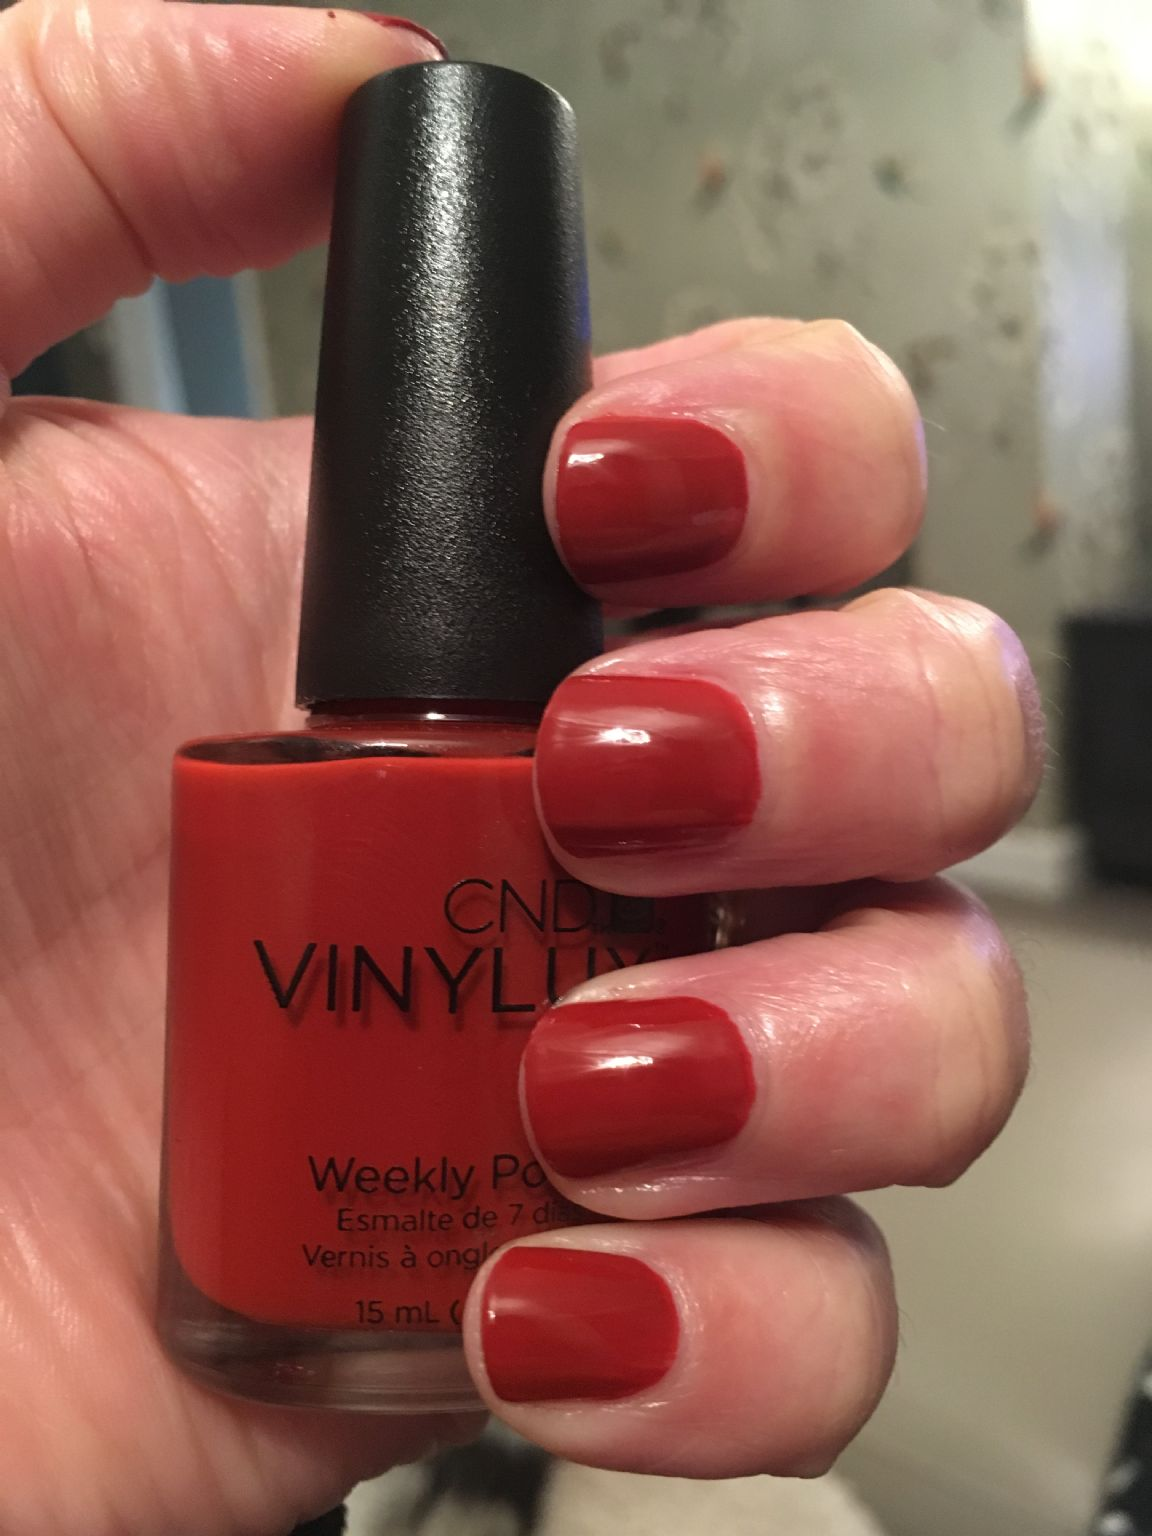 Creative Nail Design Vinylux - Brick Knit reviews, photos - MakeupAlley